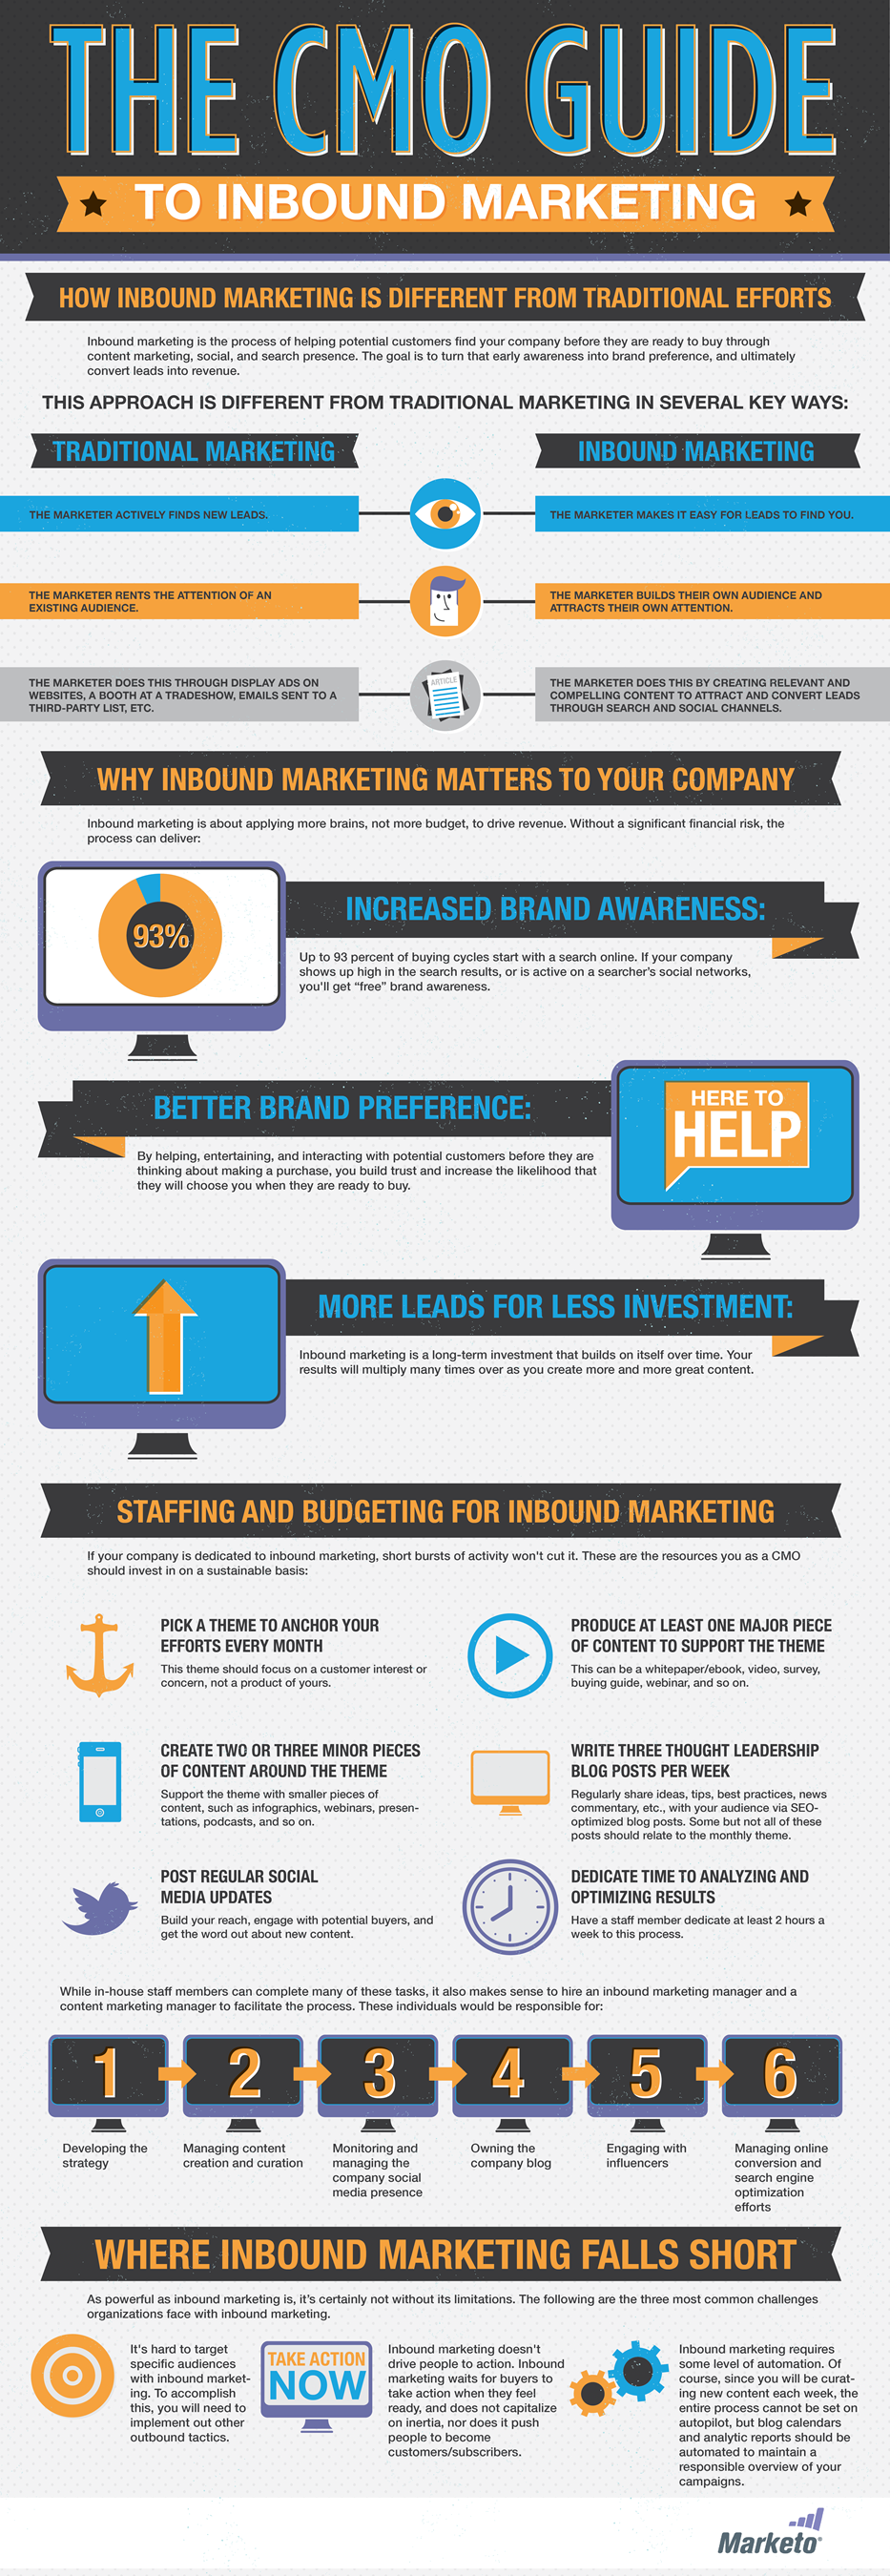 The CMO Guide to Inbound Marketing Infographic by Marketo